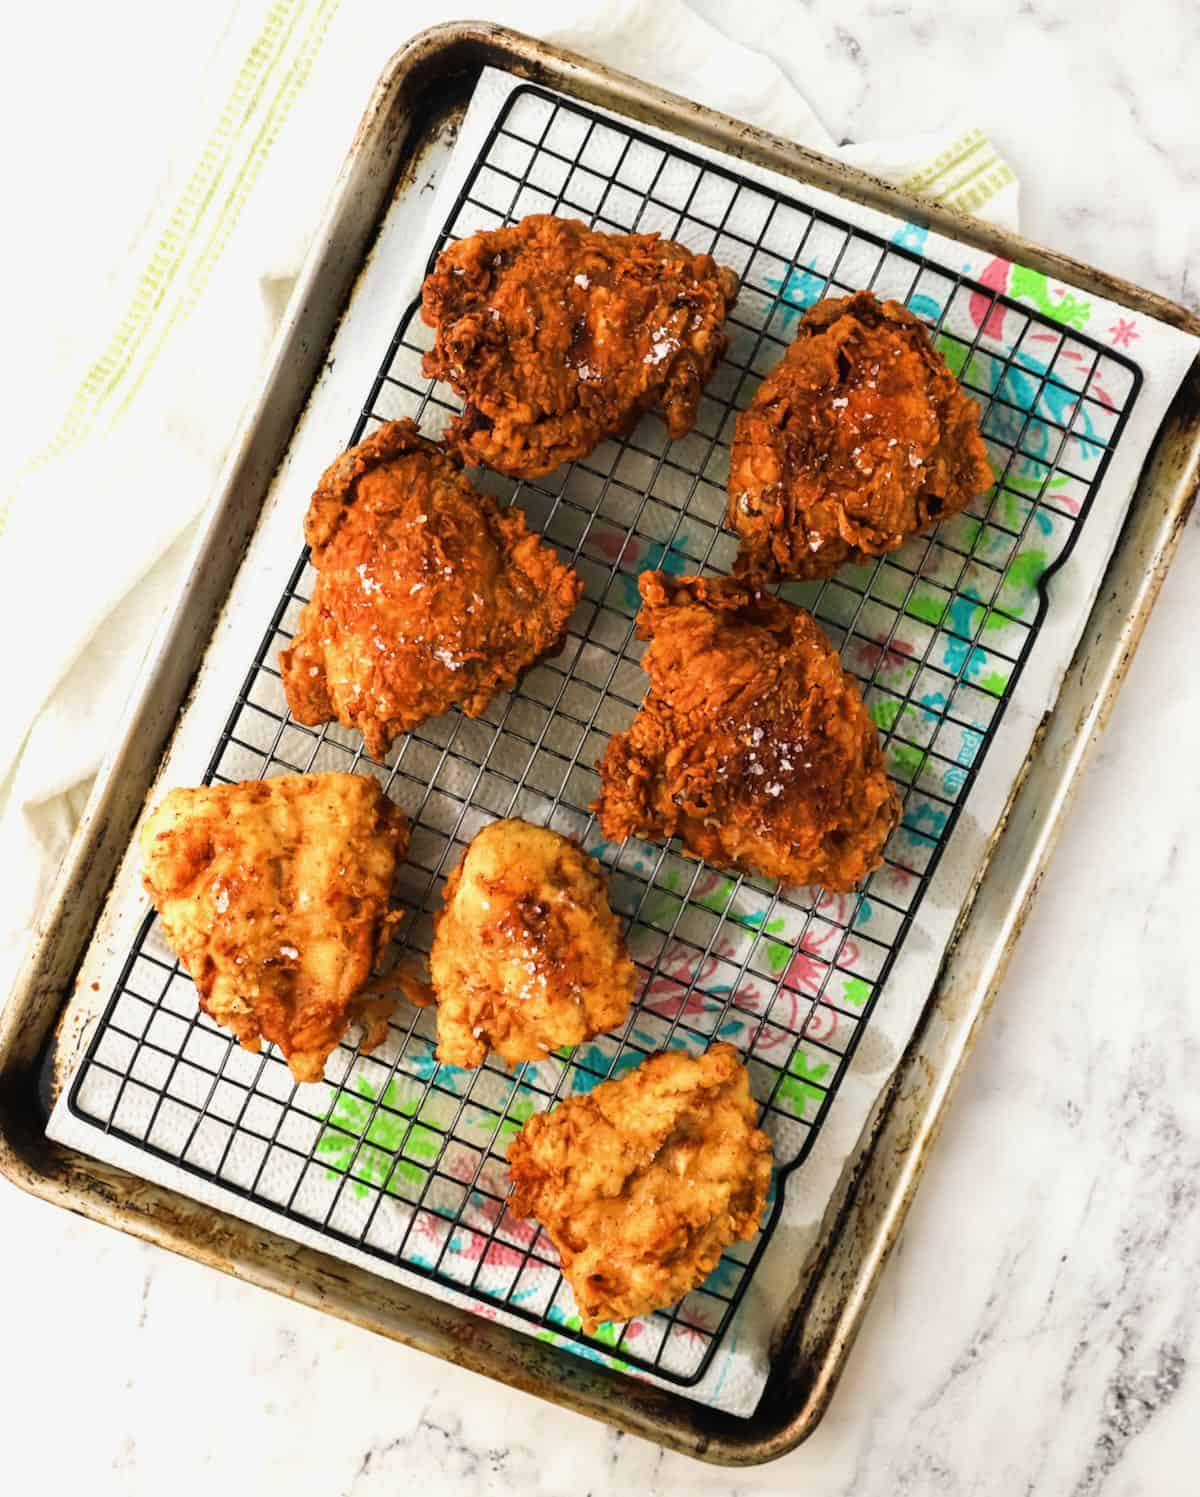 Fried chicken draining on a wire rack.